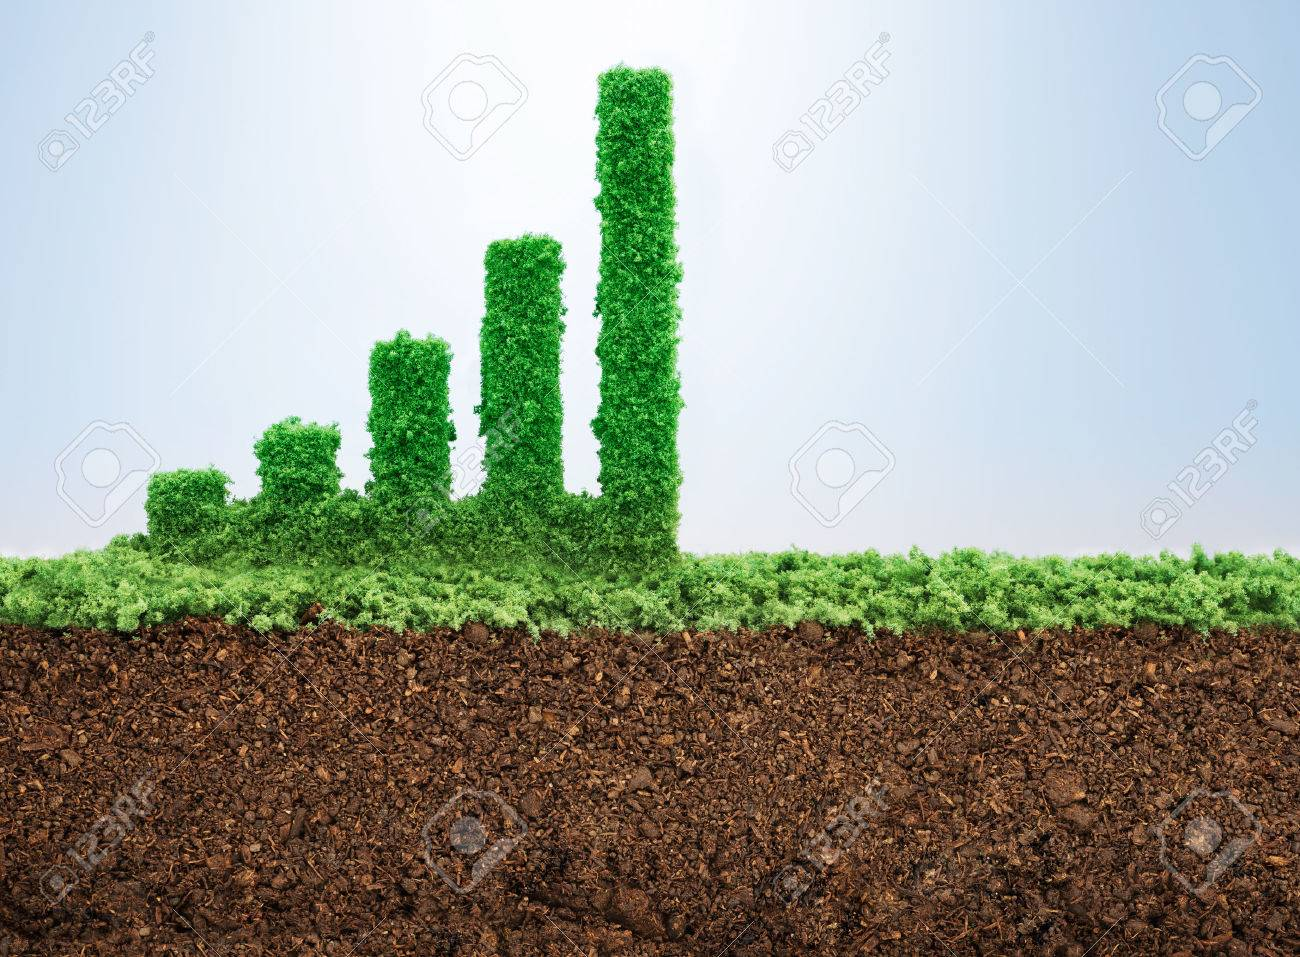 Business growth concept with grass growing in shape of graphic bar - 52519600